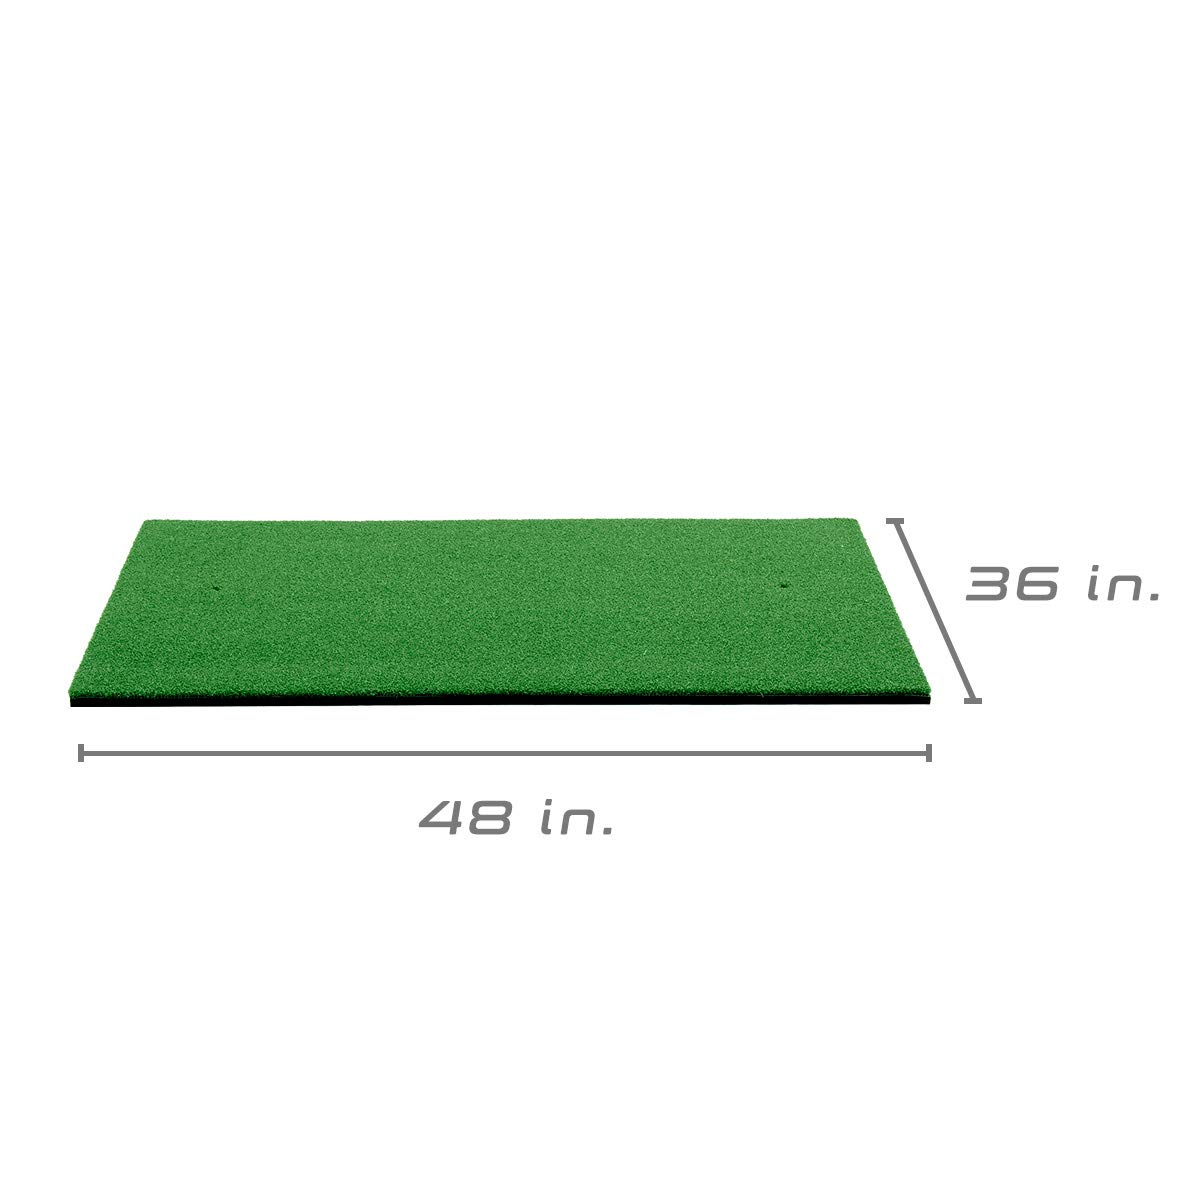 Motivo Golf Fairway One Pro Golf Hitting Mat 3 x 4 Feet Free Two-Day Delivery